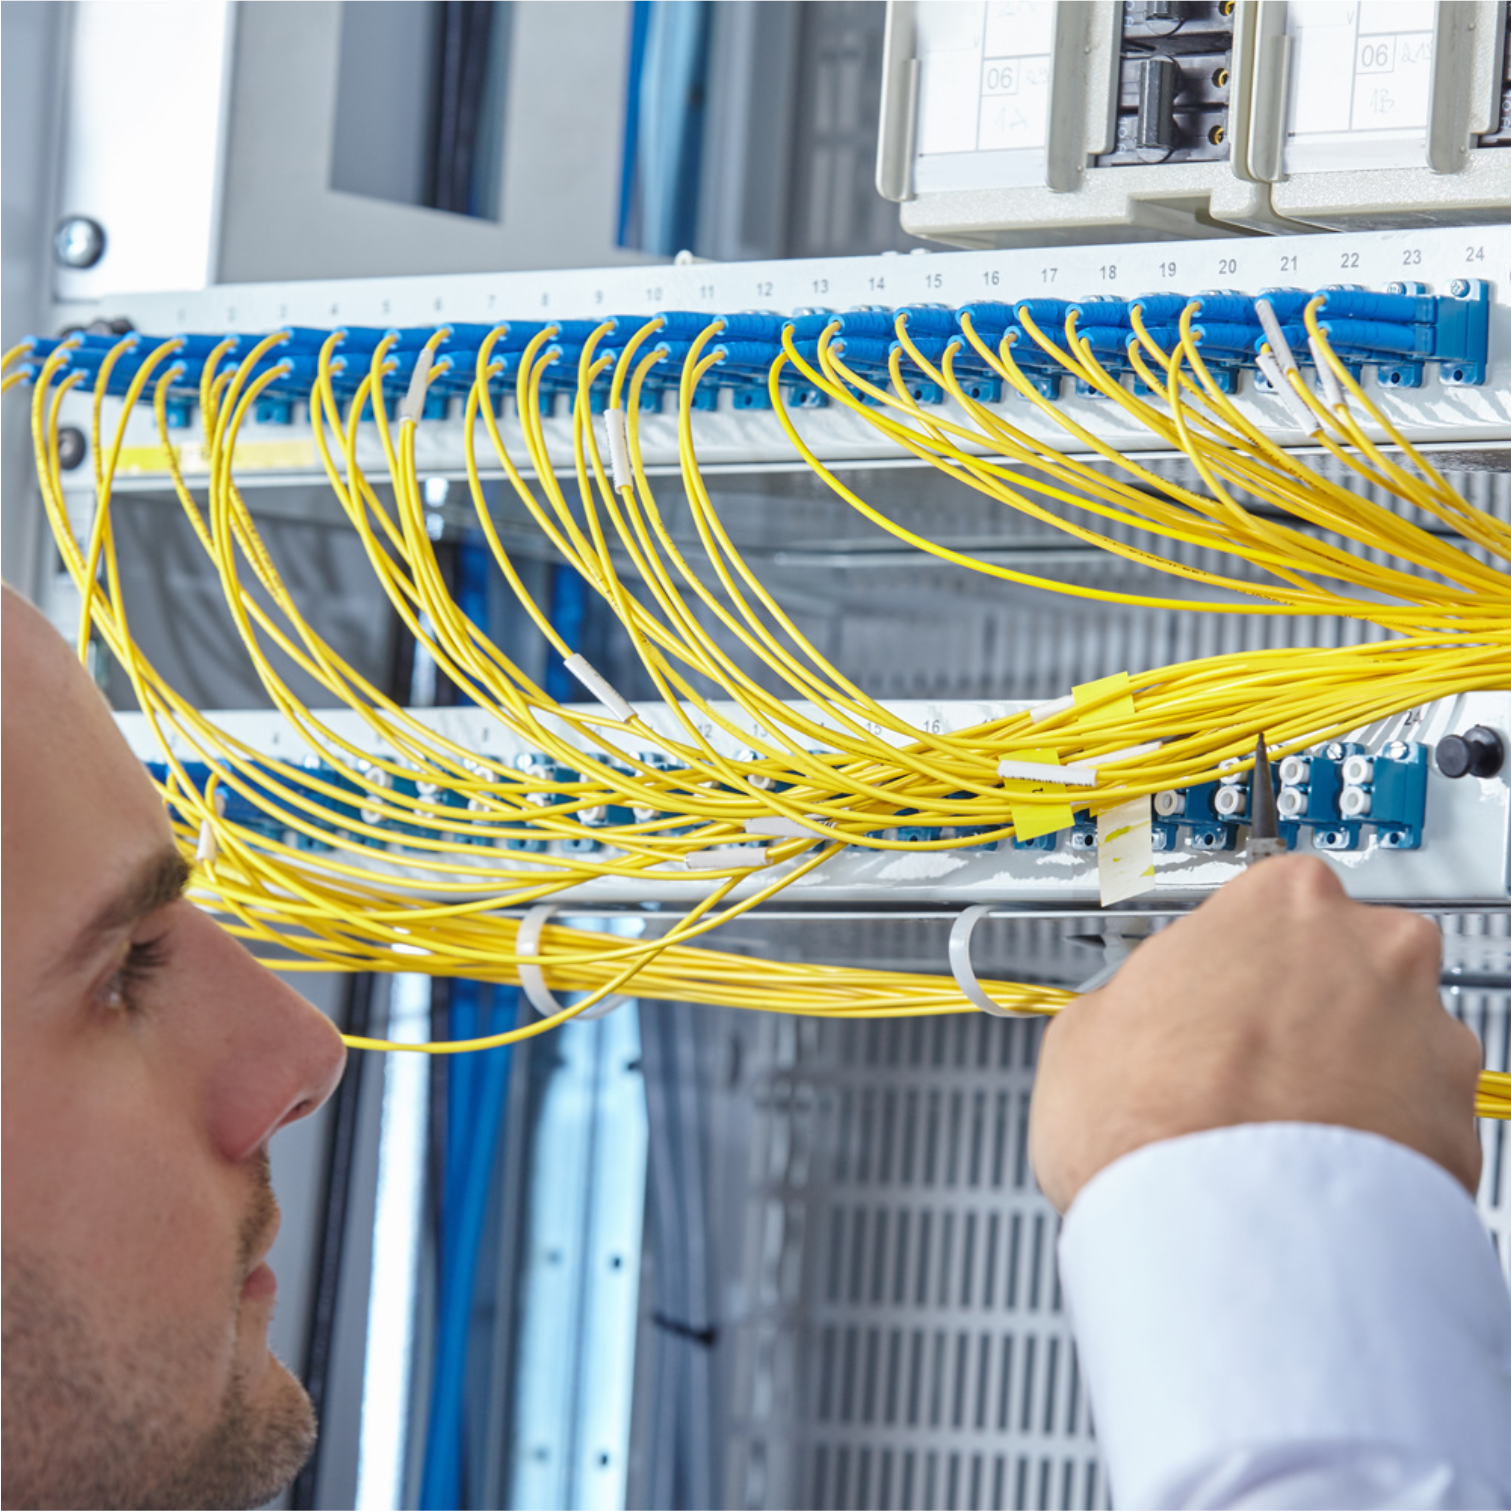 Alantec Structured Cabling System With A 25 Year Warranty Wiring Ups Fiber Offer